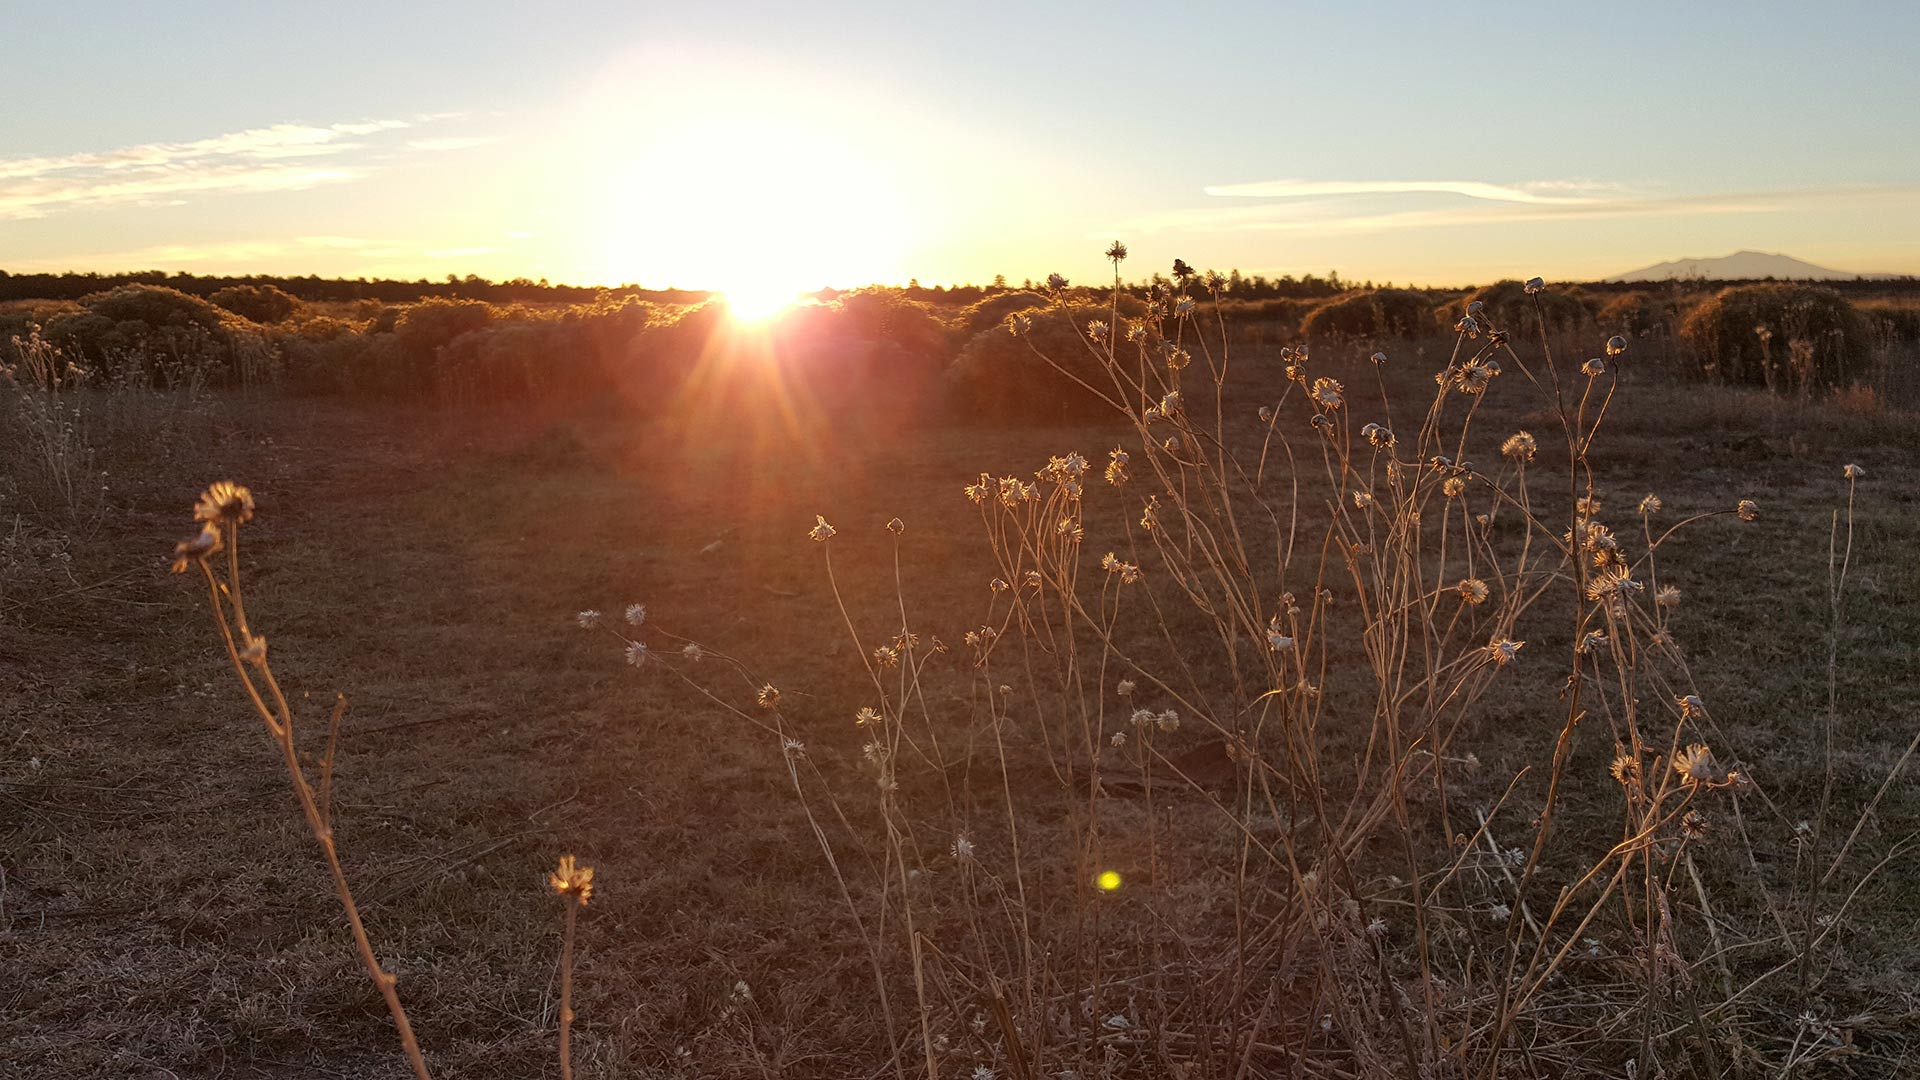 The sun rises over a field in Northern Arizona.